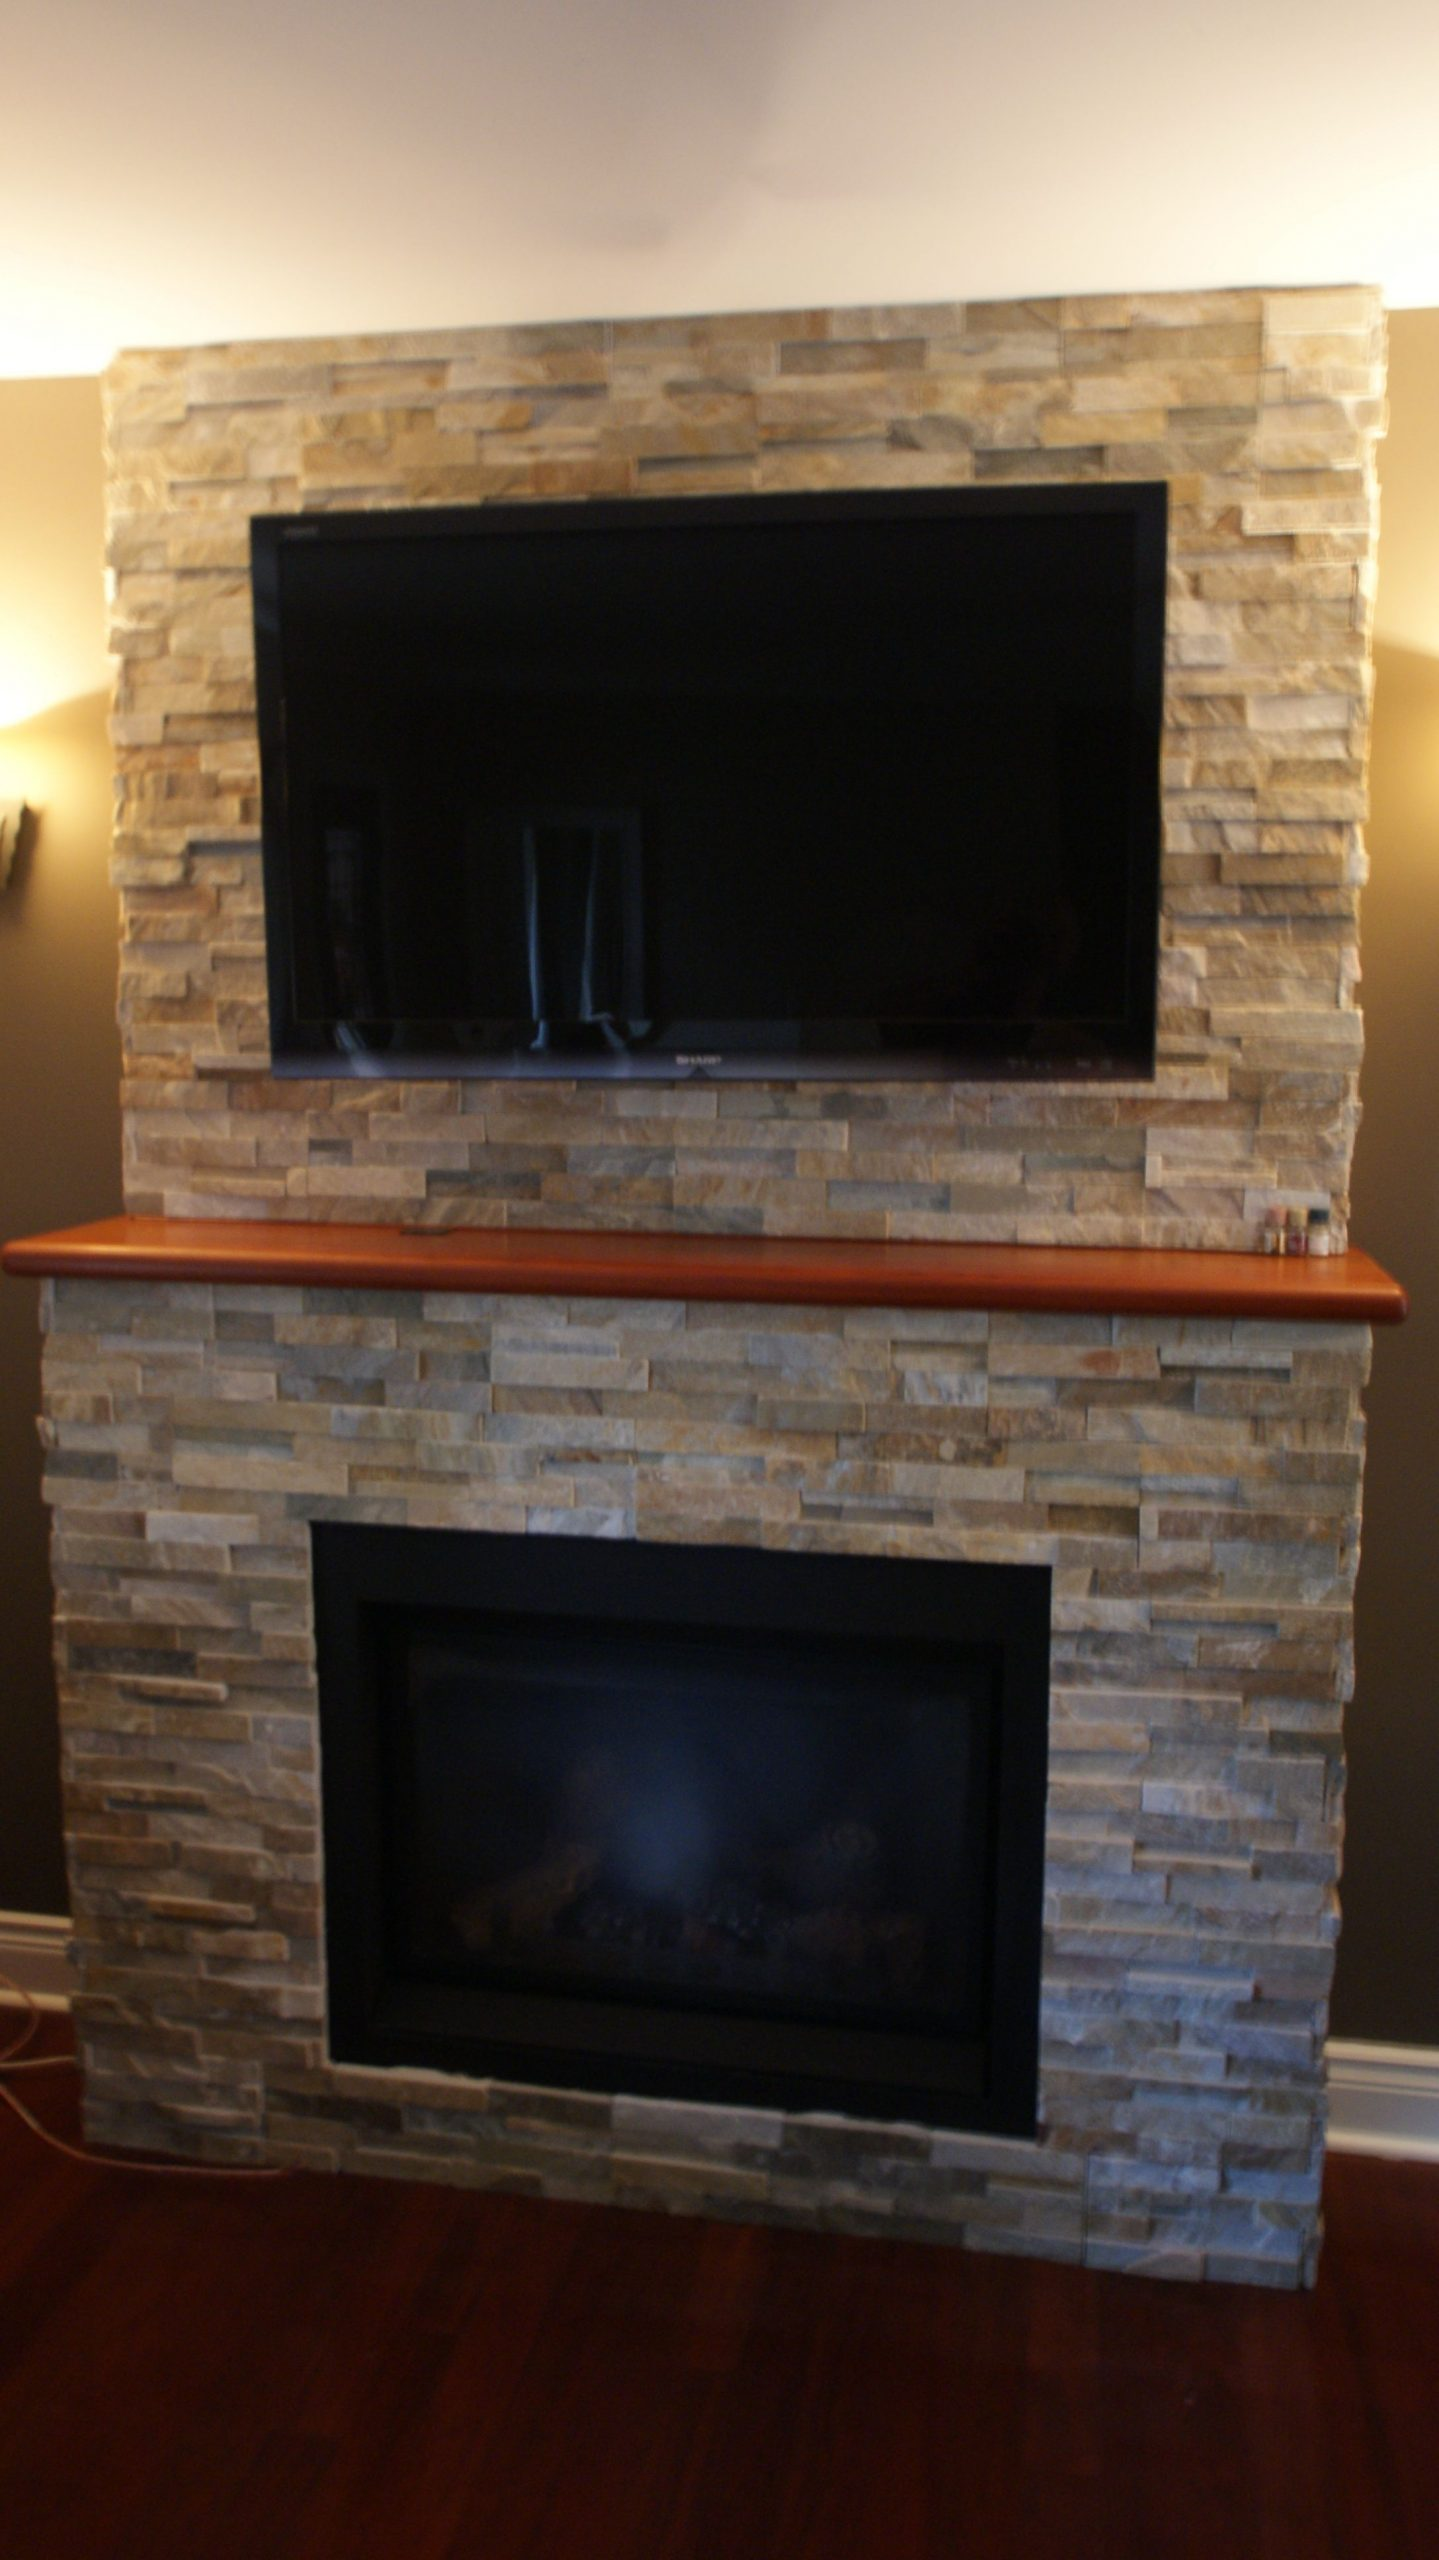 Wall Mounted Natural Gas Fireplace Unique Natural Stone Fireplace Tv Mounted Over Fieplace Gas